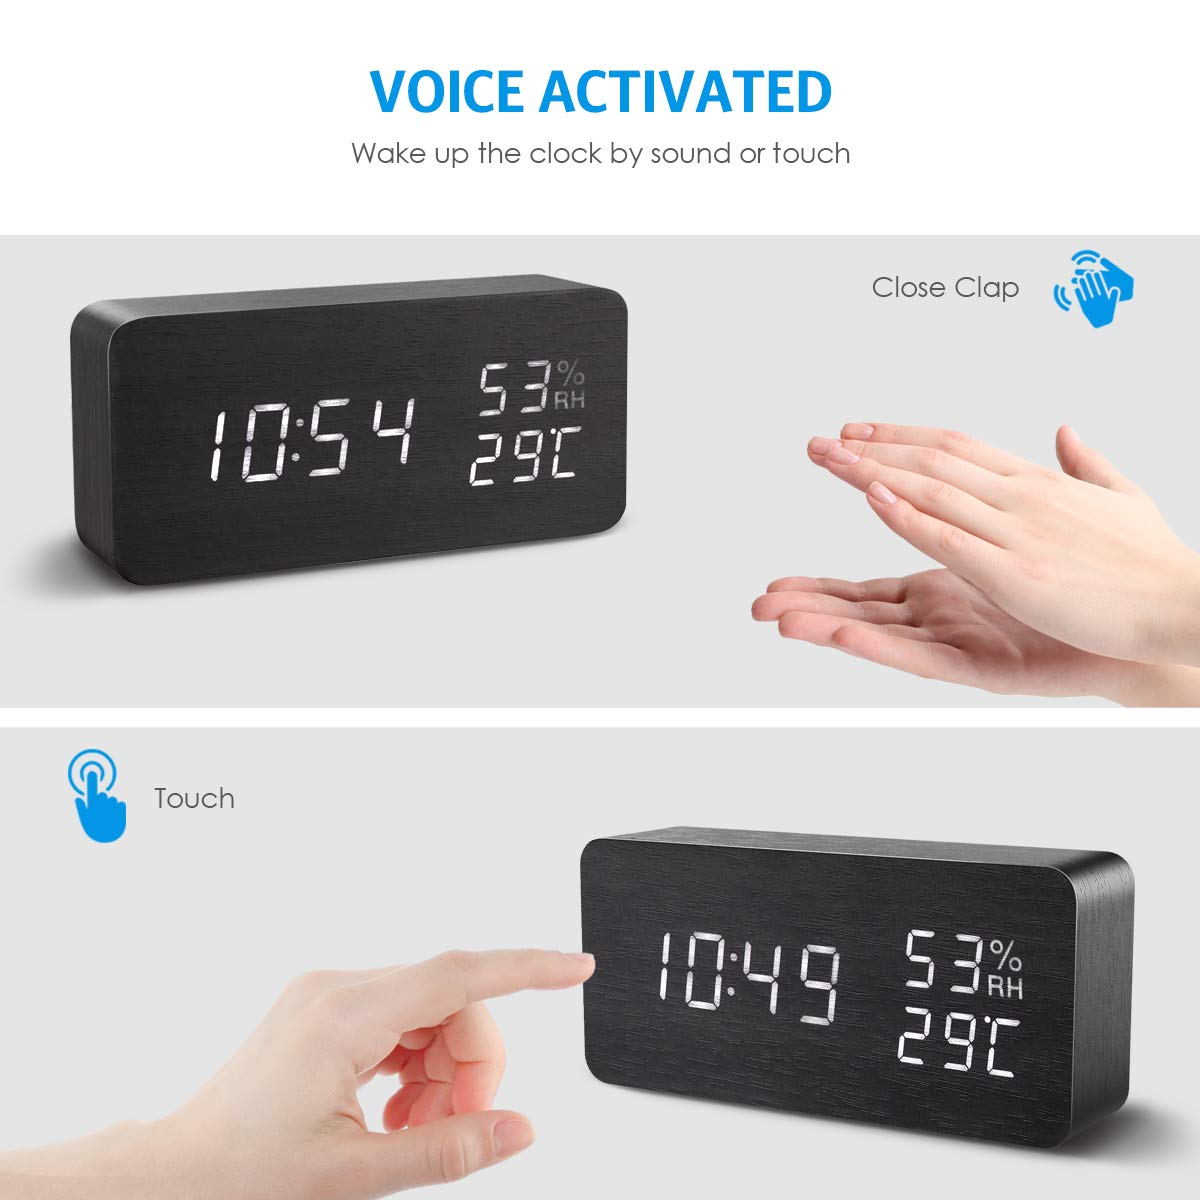 AMIR Alarm Clock, Wooden Digital Multi-Function Modern Cube LED Light, Smart Voice-Activated with 3 Alarm Sounds, Display Date Temperature & Humidity for Home, Kitchen, Bedroom (Black) by AMIR (Image #4)